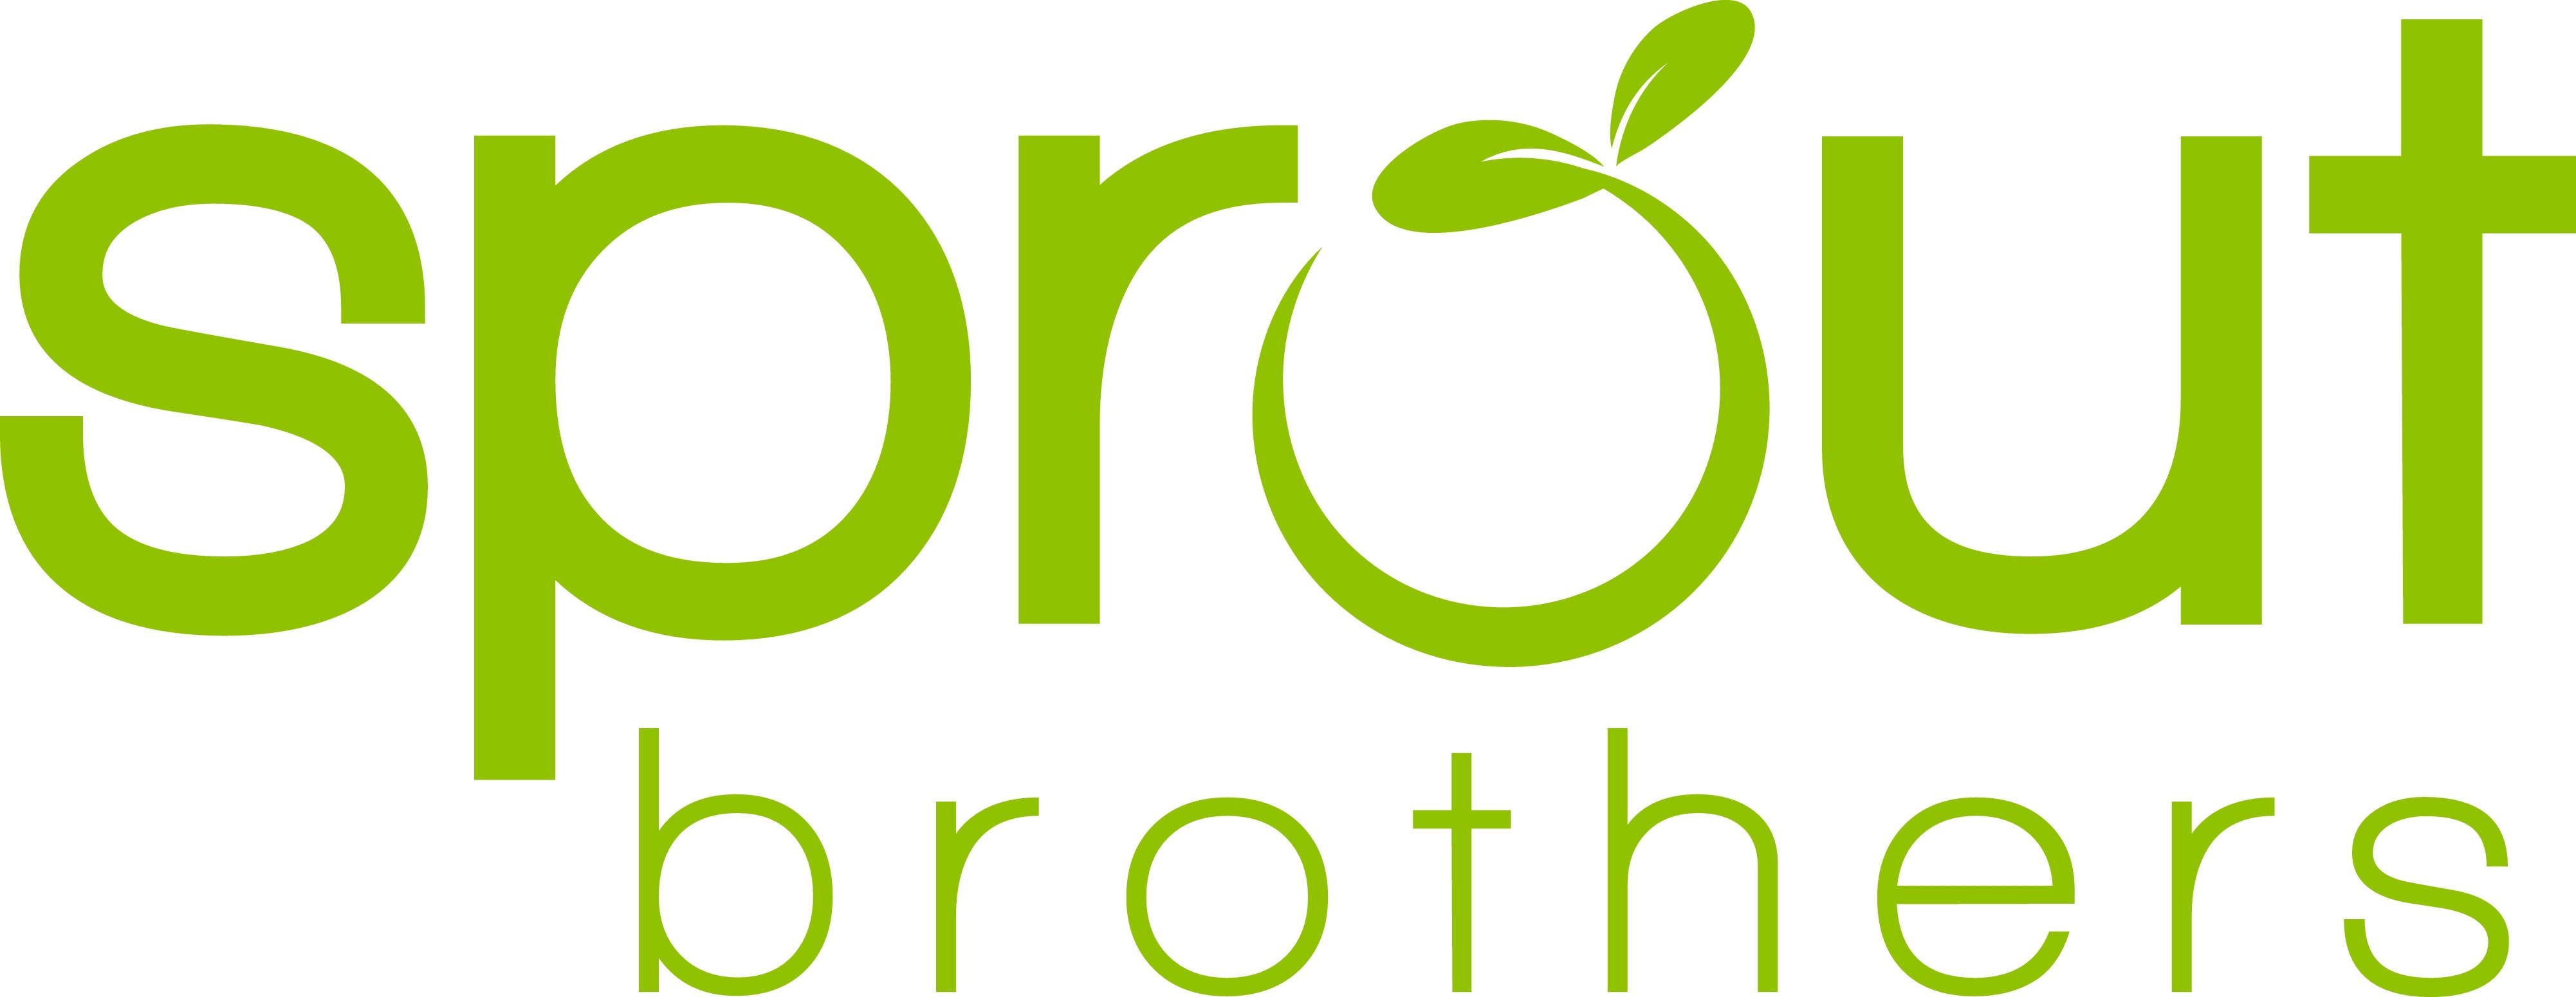 **Design the new logo for Sprout Brothers of Sproutman!